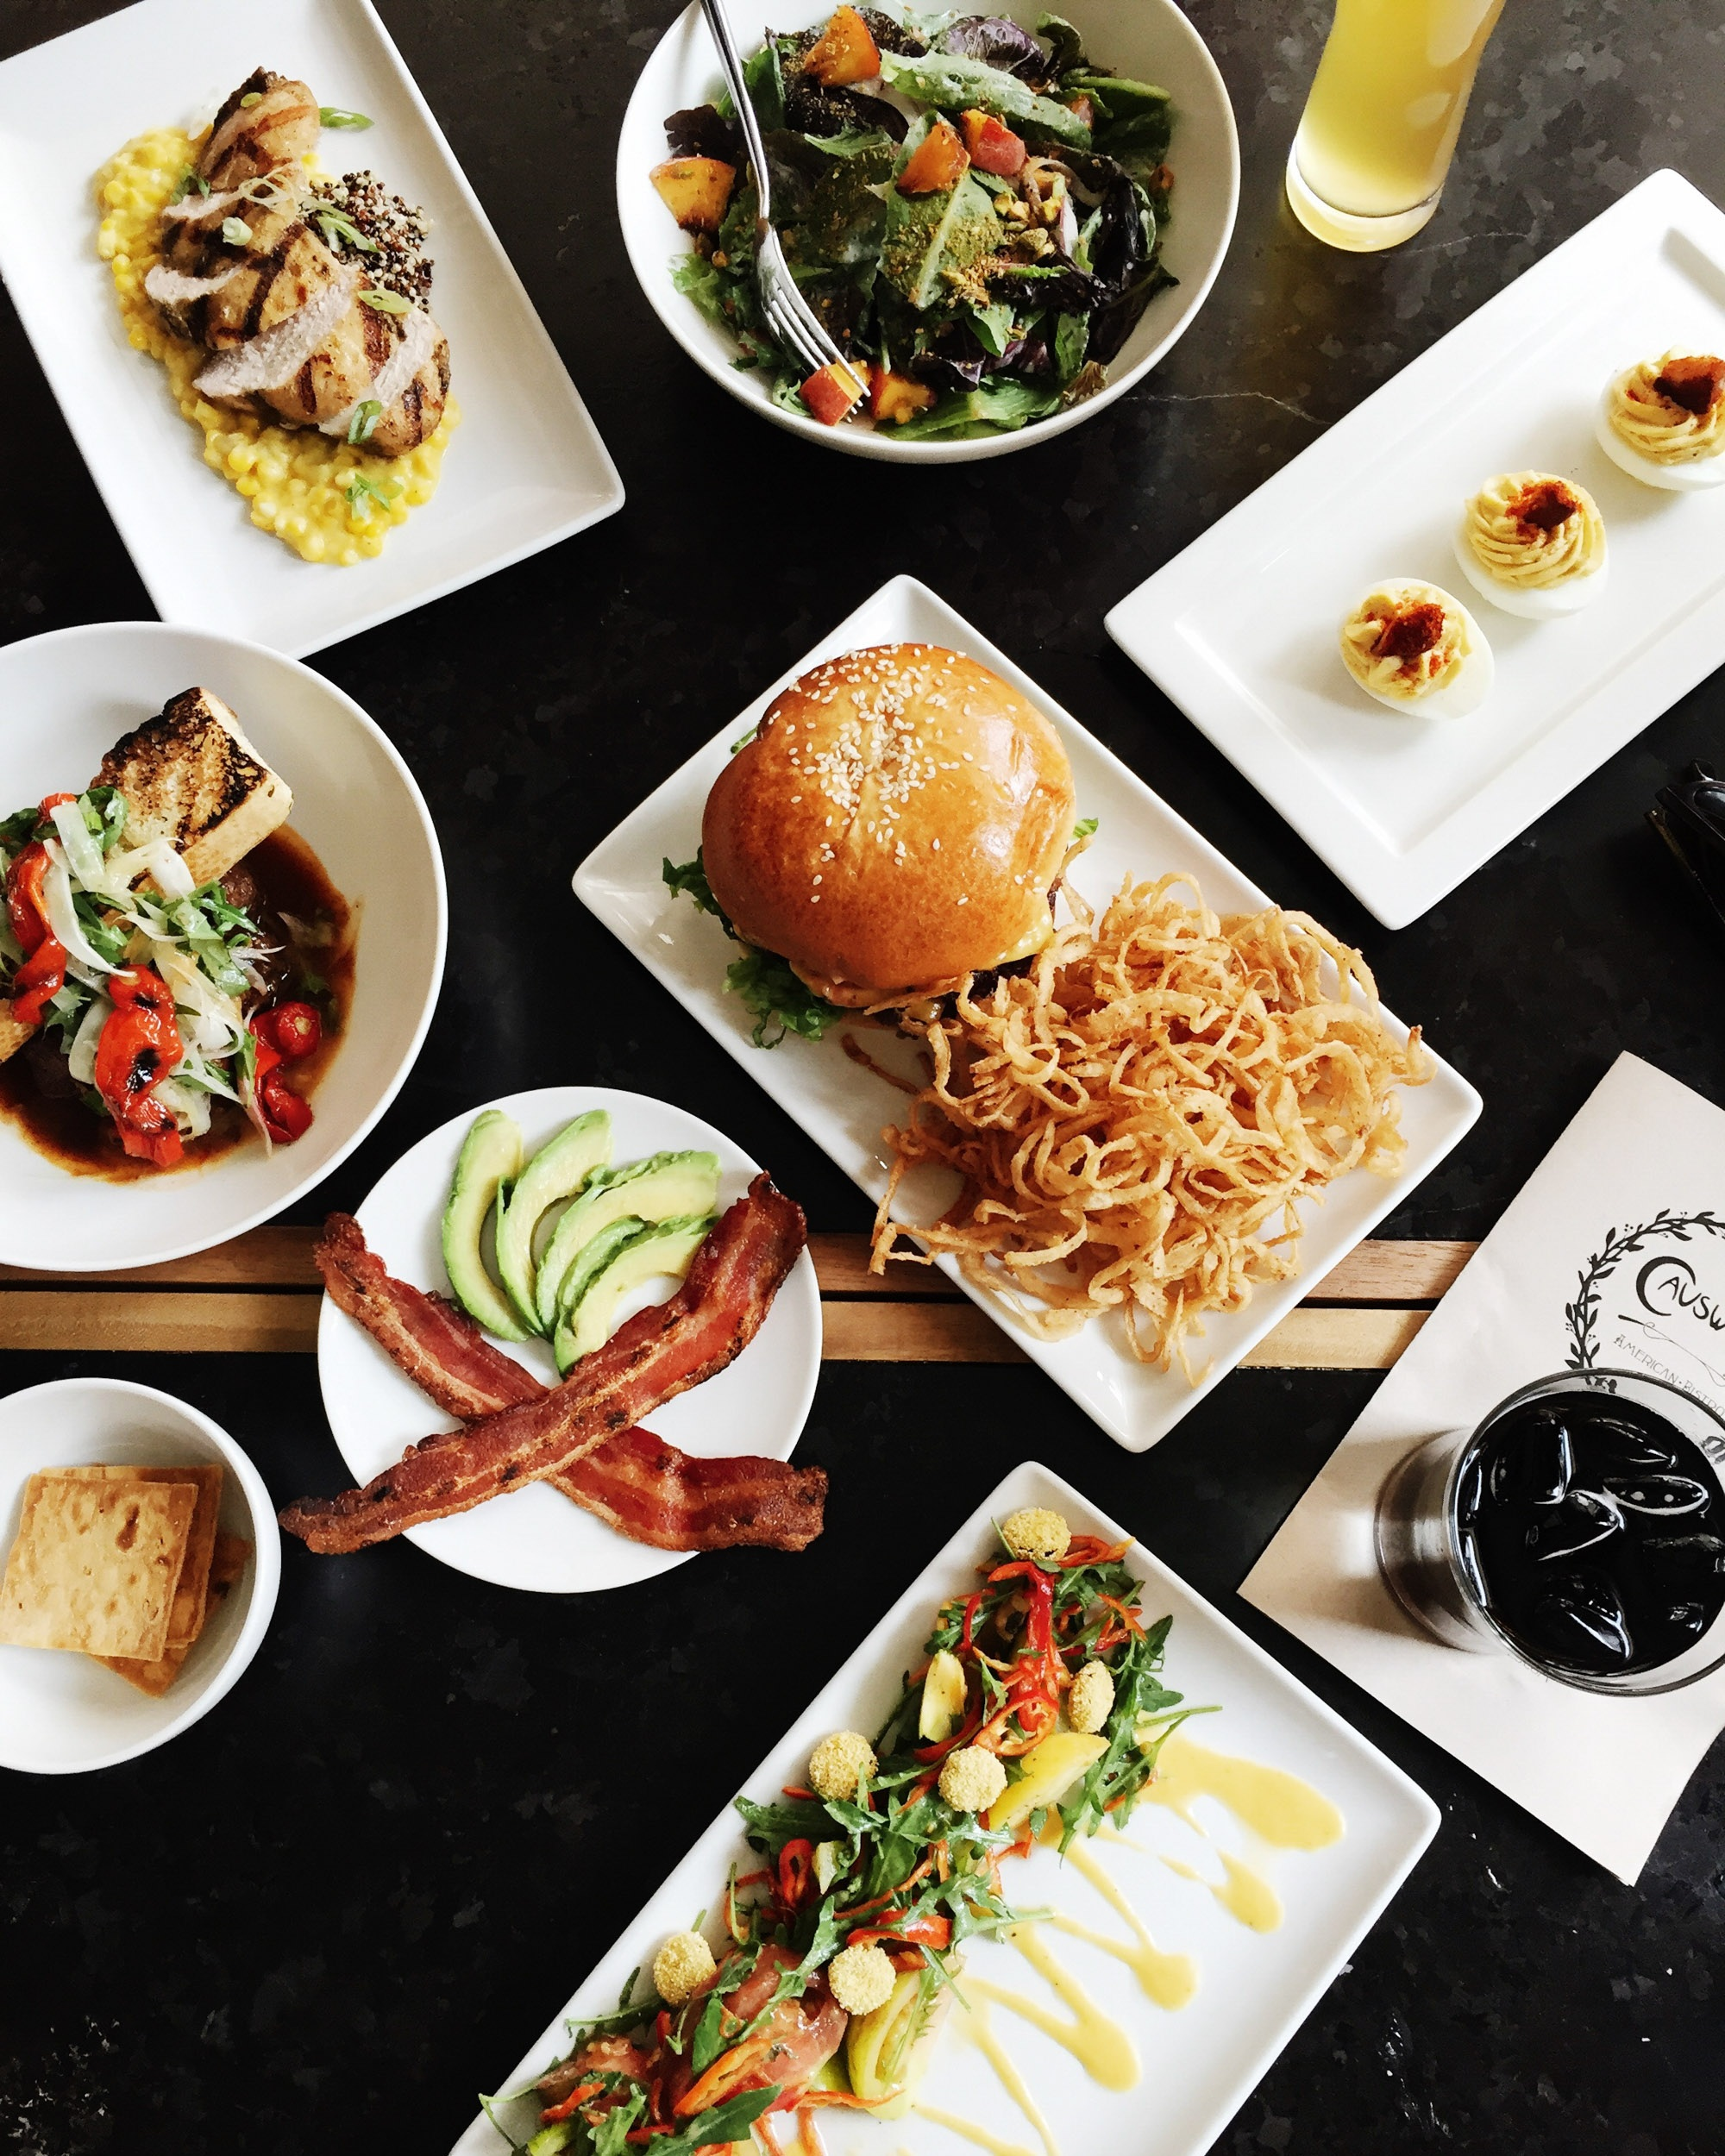 2019 San Francisco Food Guide - The city by the bay has a buzzing foodie scene, with new spots opening every month. See the latest hottest dining spots from Michelin rated to a whole in the wall local favorites.